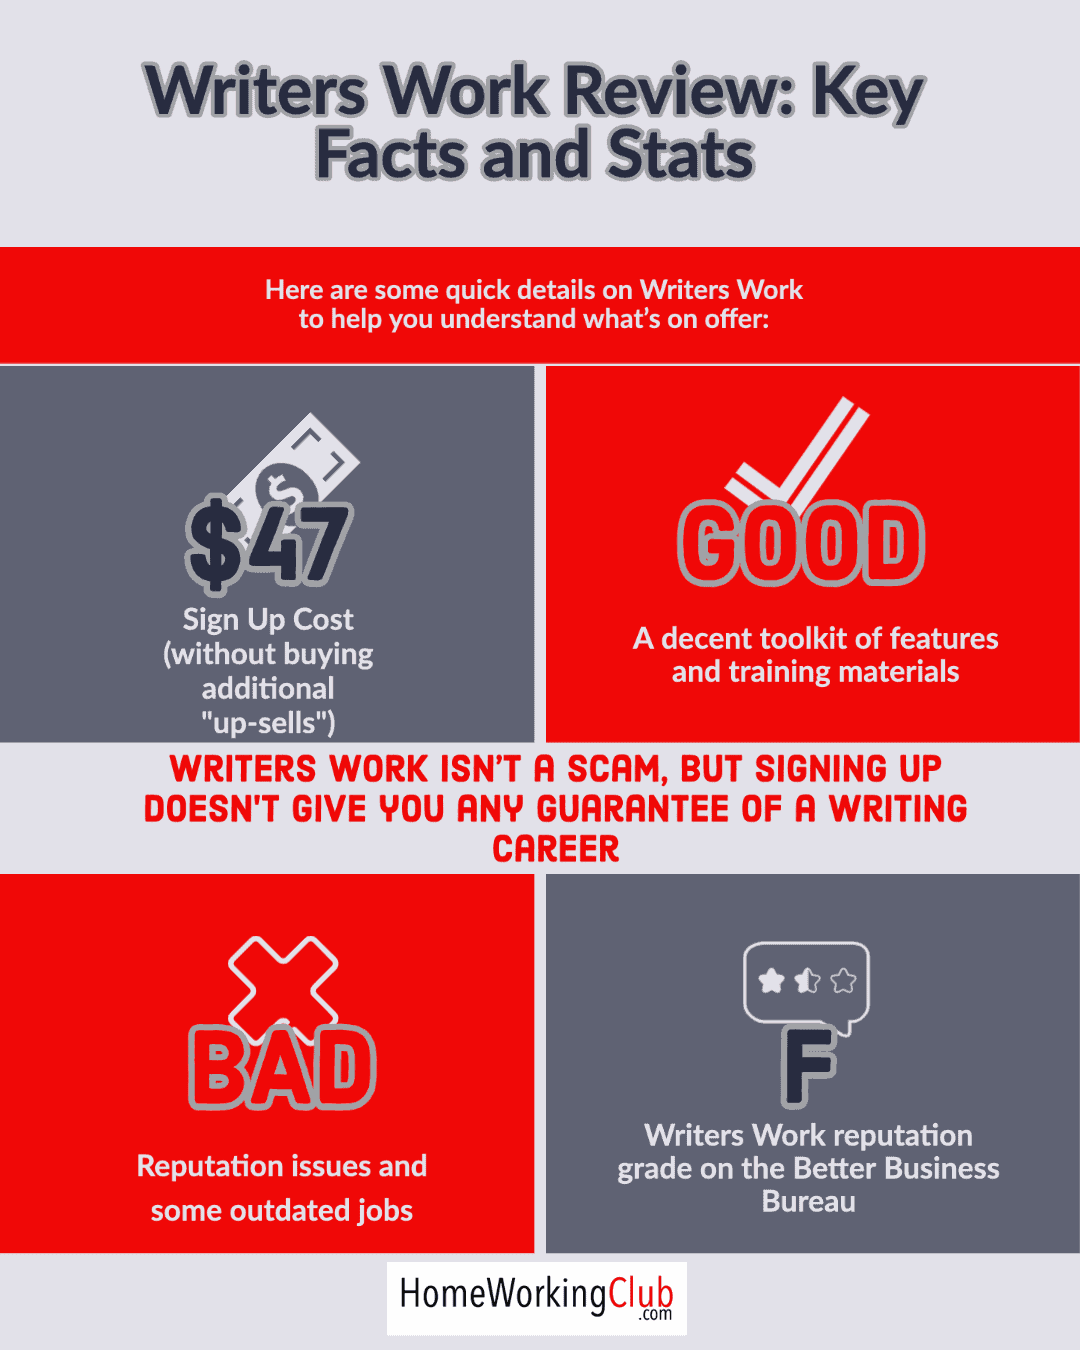 Writers Work Facts and Stats